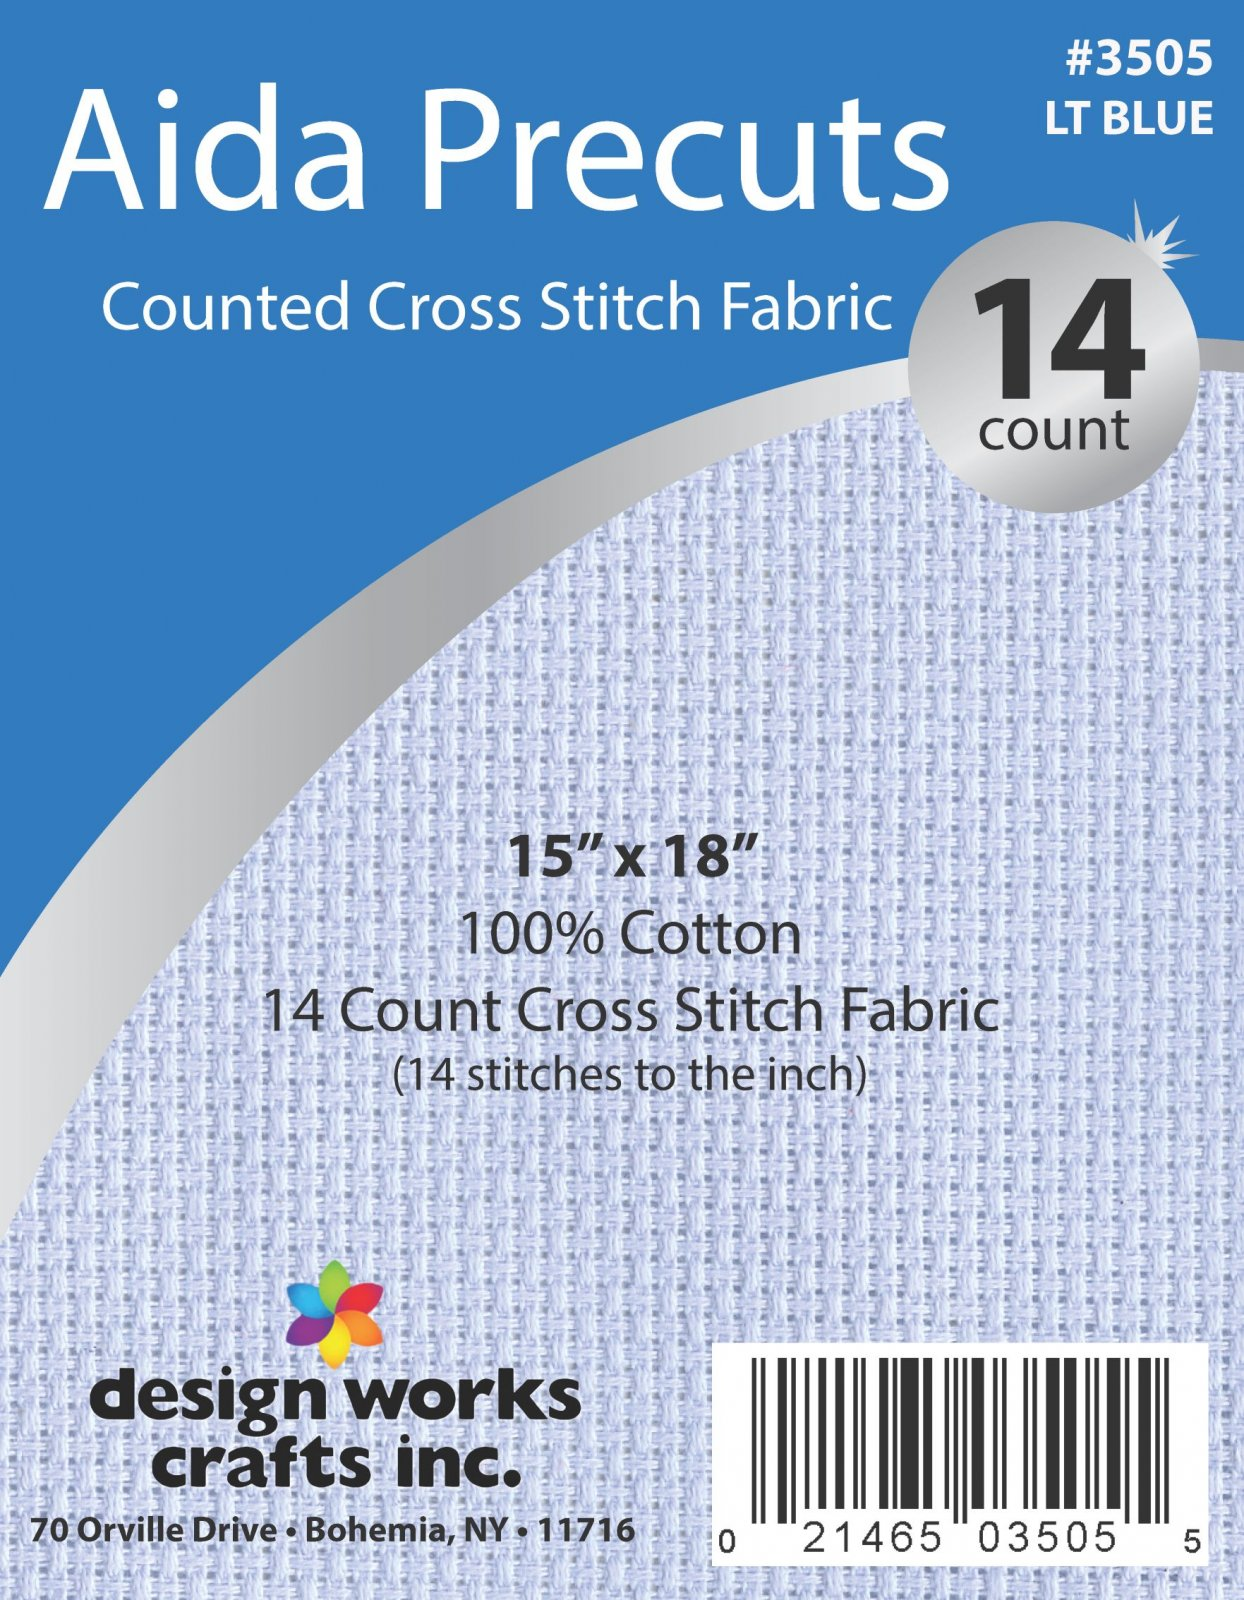 # 3505 - 14 Ct. Aida Pre-cut Counted Cross Stitch Fabric/Light Blue - 15 x 18